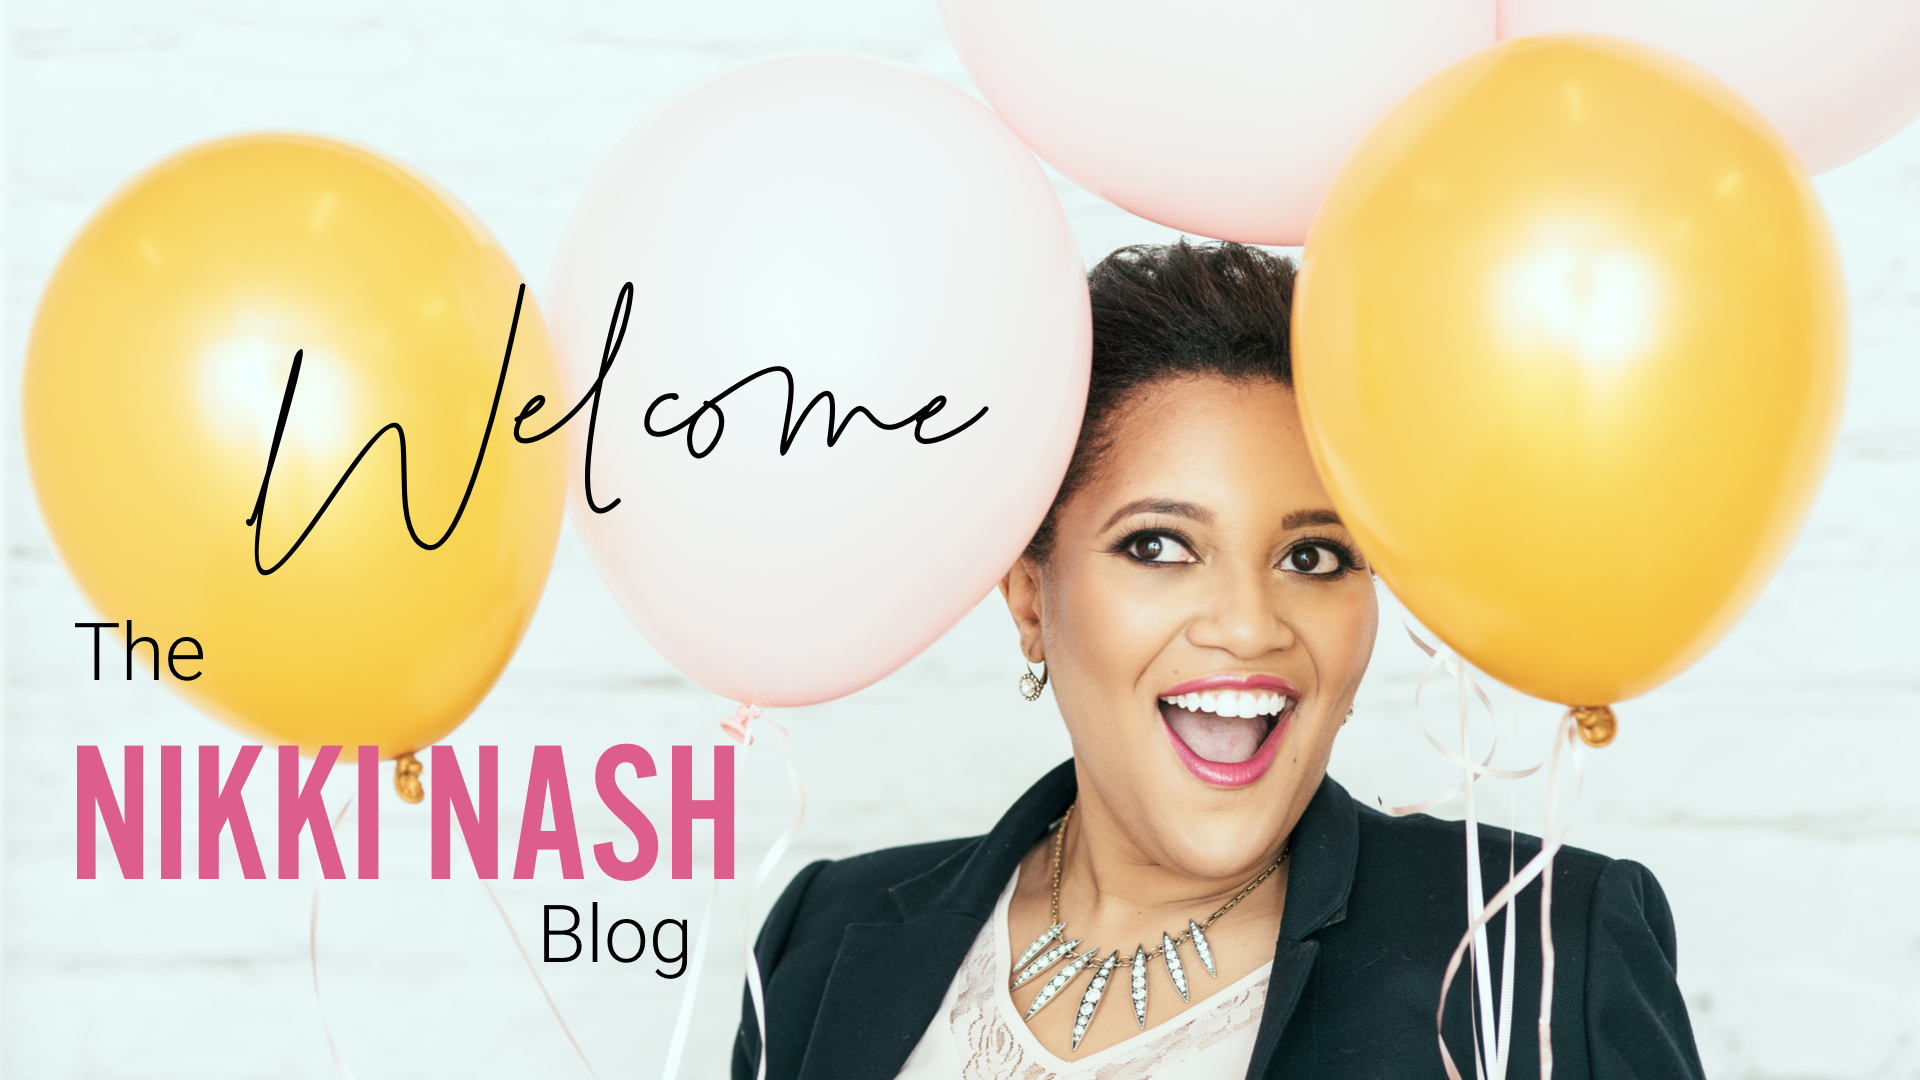 Nikki Nash Blog Header.001.jpeg